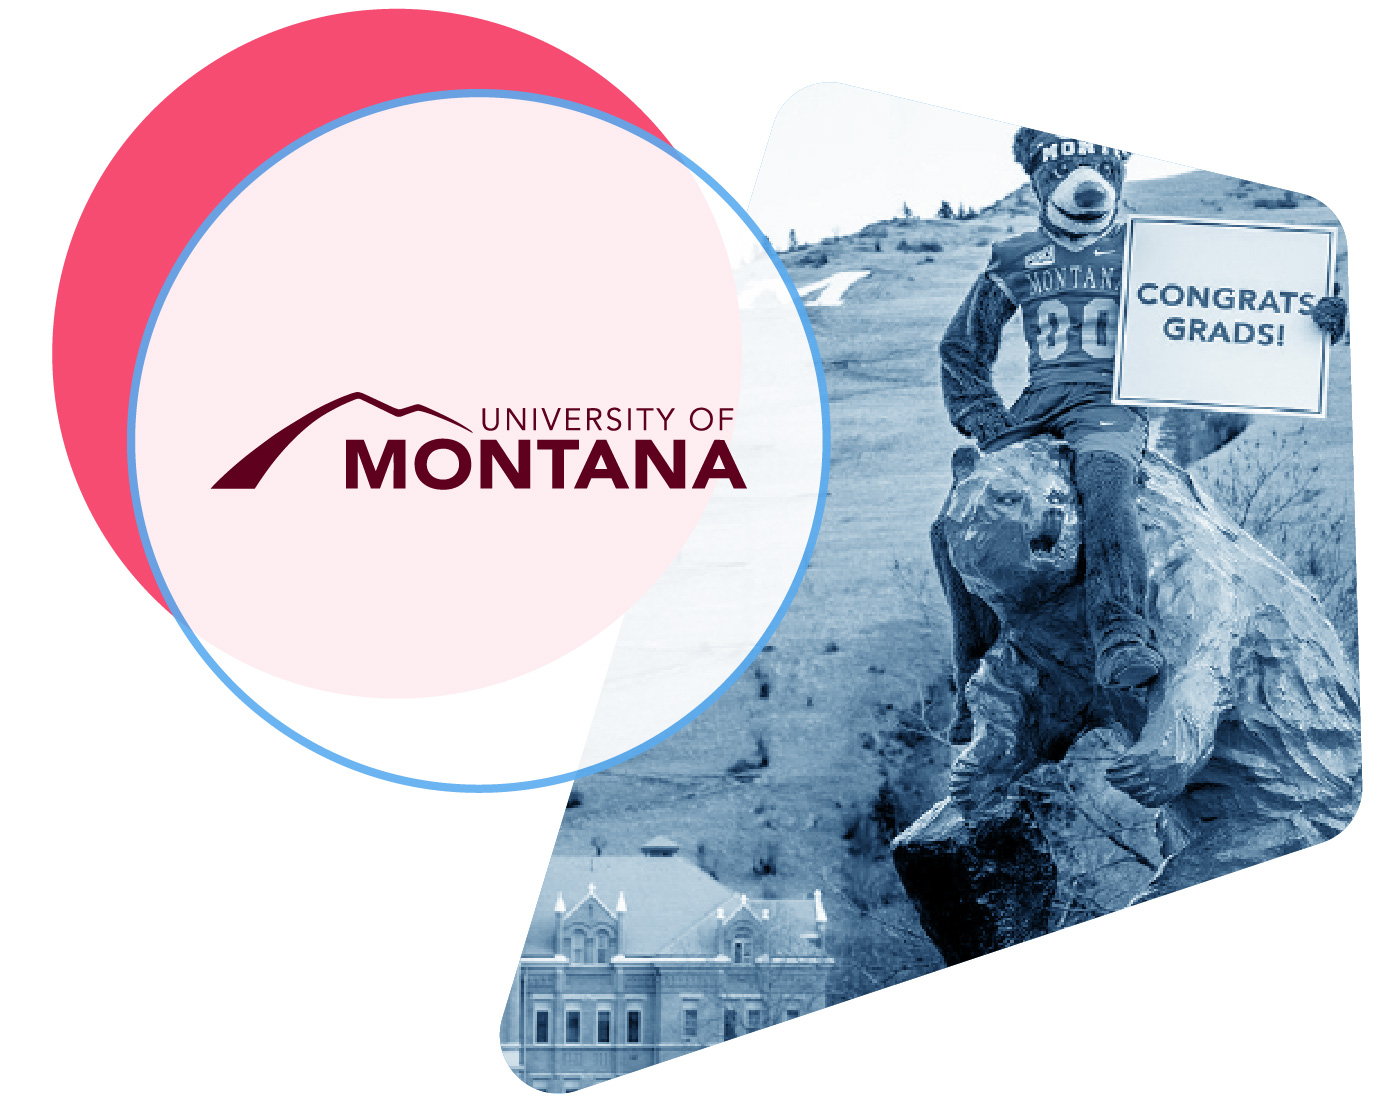 University of Montana logo and campus image with live chat icons